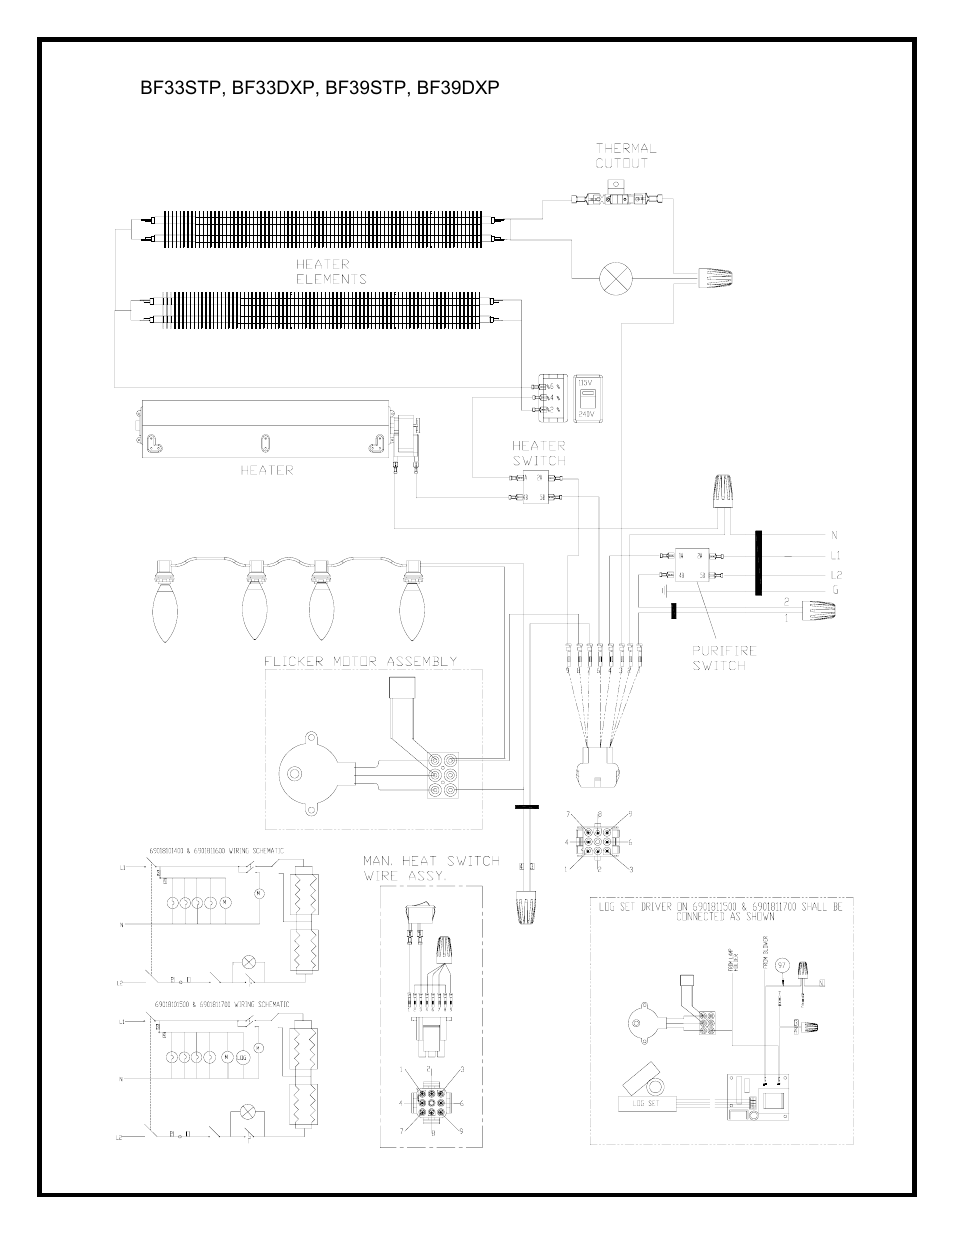 Wiring       diagram      Dimplex BF39STPDXP    User    Manual   Page 8  27